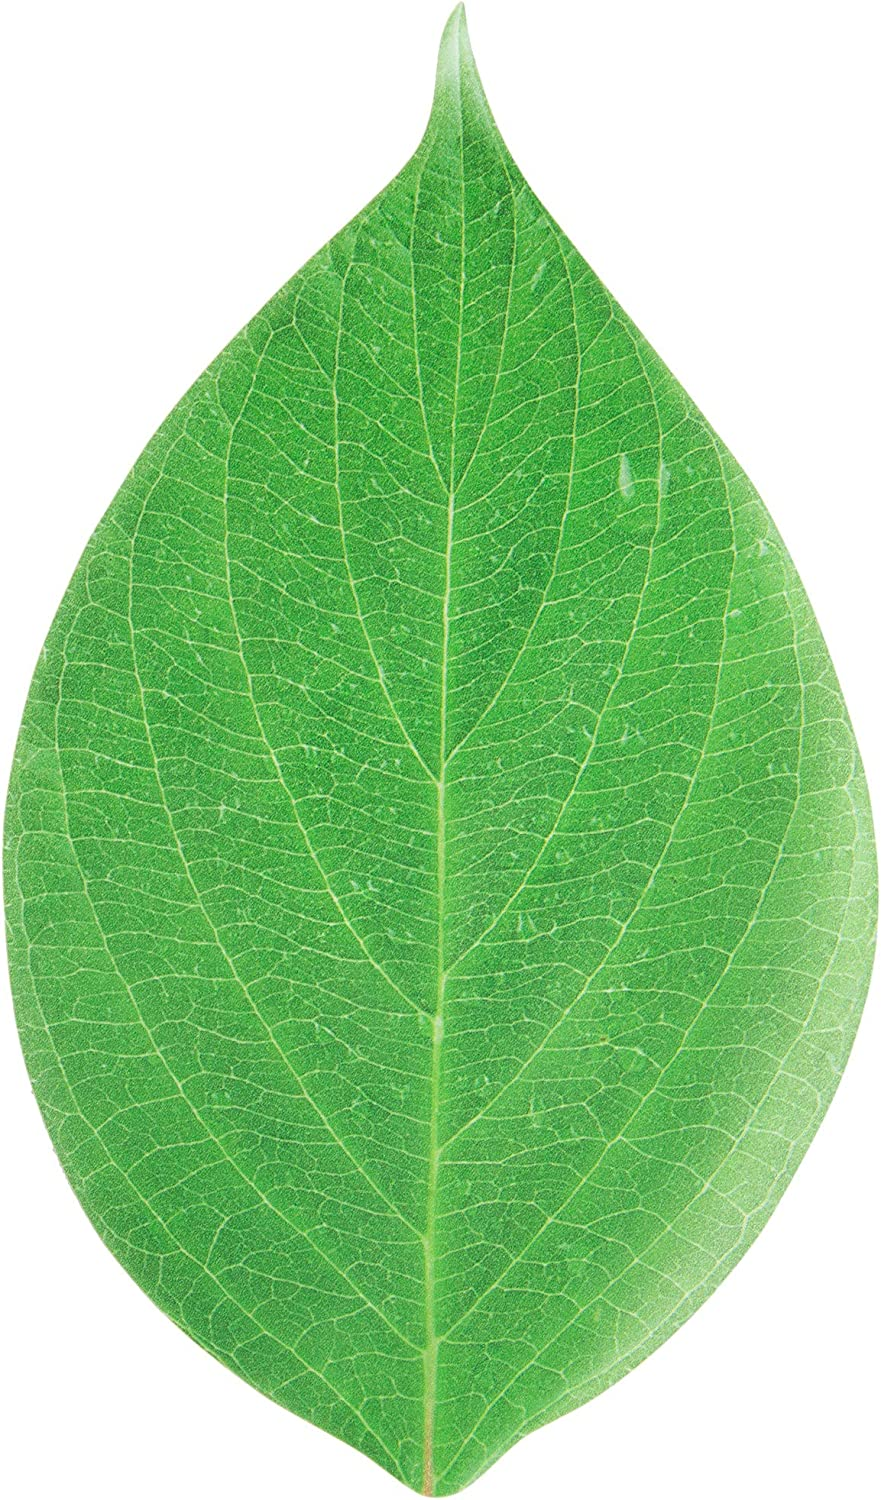 Disposable Cheese Board Paper, Set of 10, Vibrant Green Leaf 12 x 7, Perfect Cheese Board Accessories for Meat and Cheese Boards, Travel, Weddings